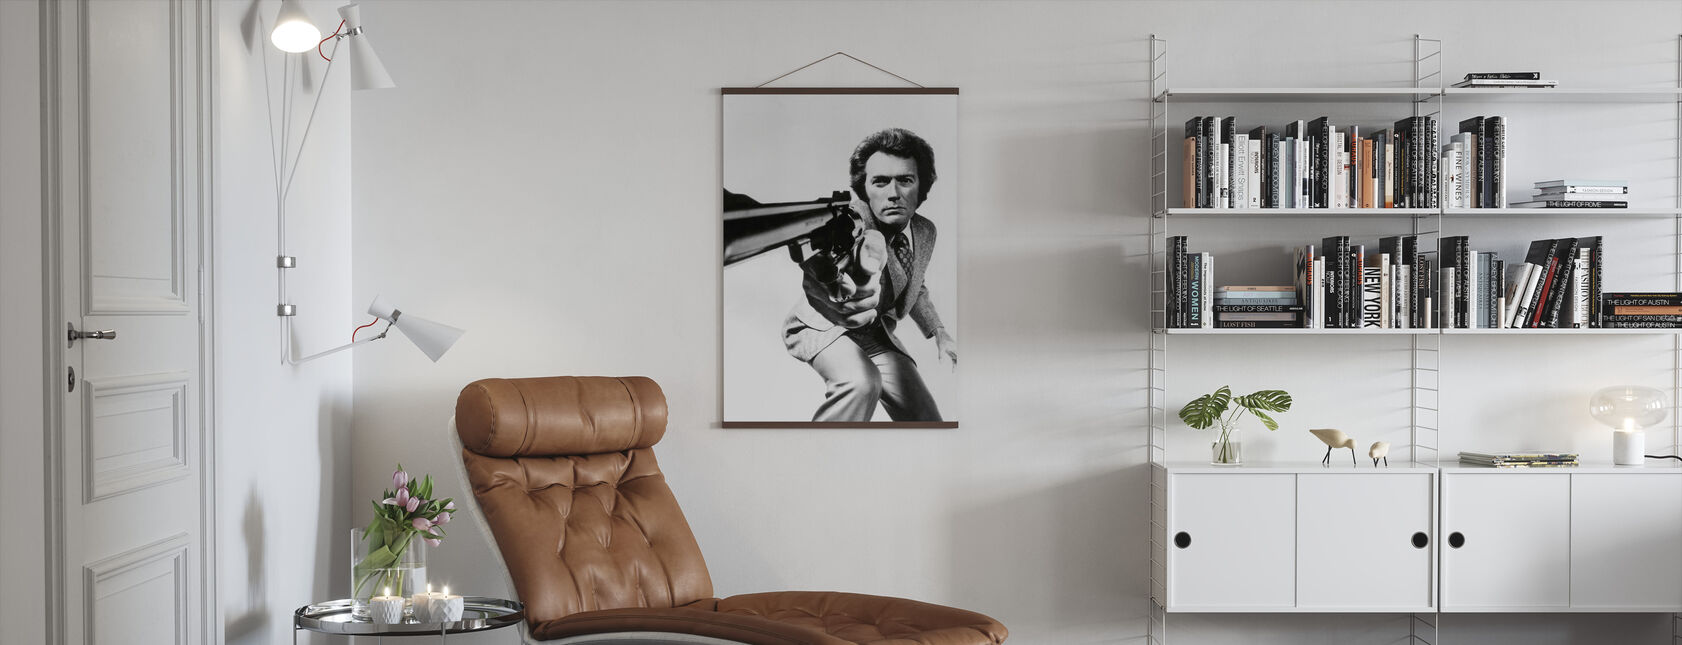 Clint Eastwood i Magnum Force - Plakat - Stue